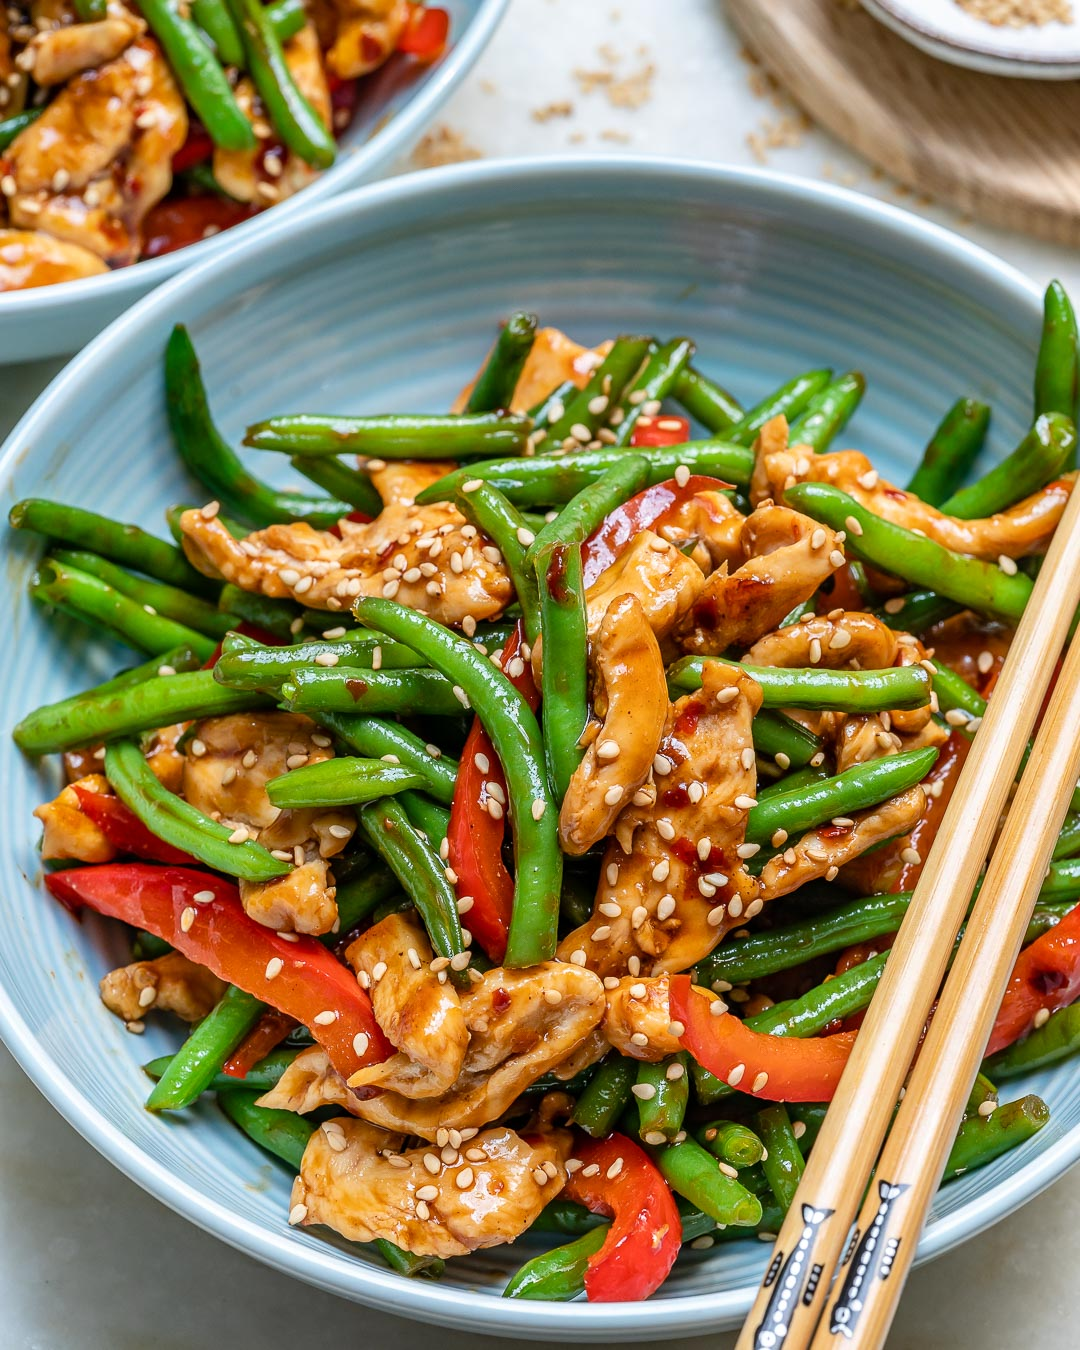 Make this Sesame Chicken Stir-fry on Busy Back to School Nights!